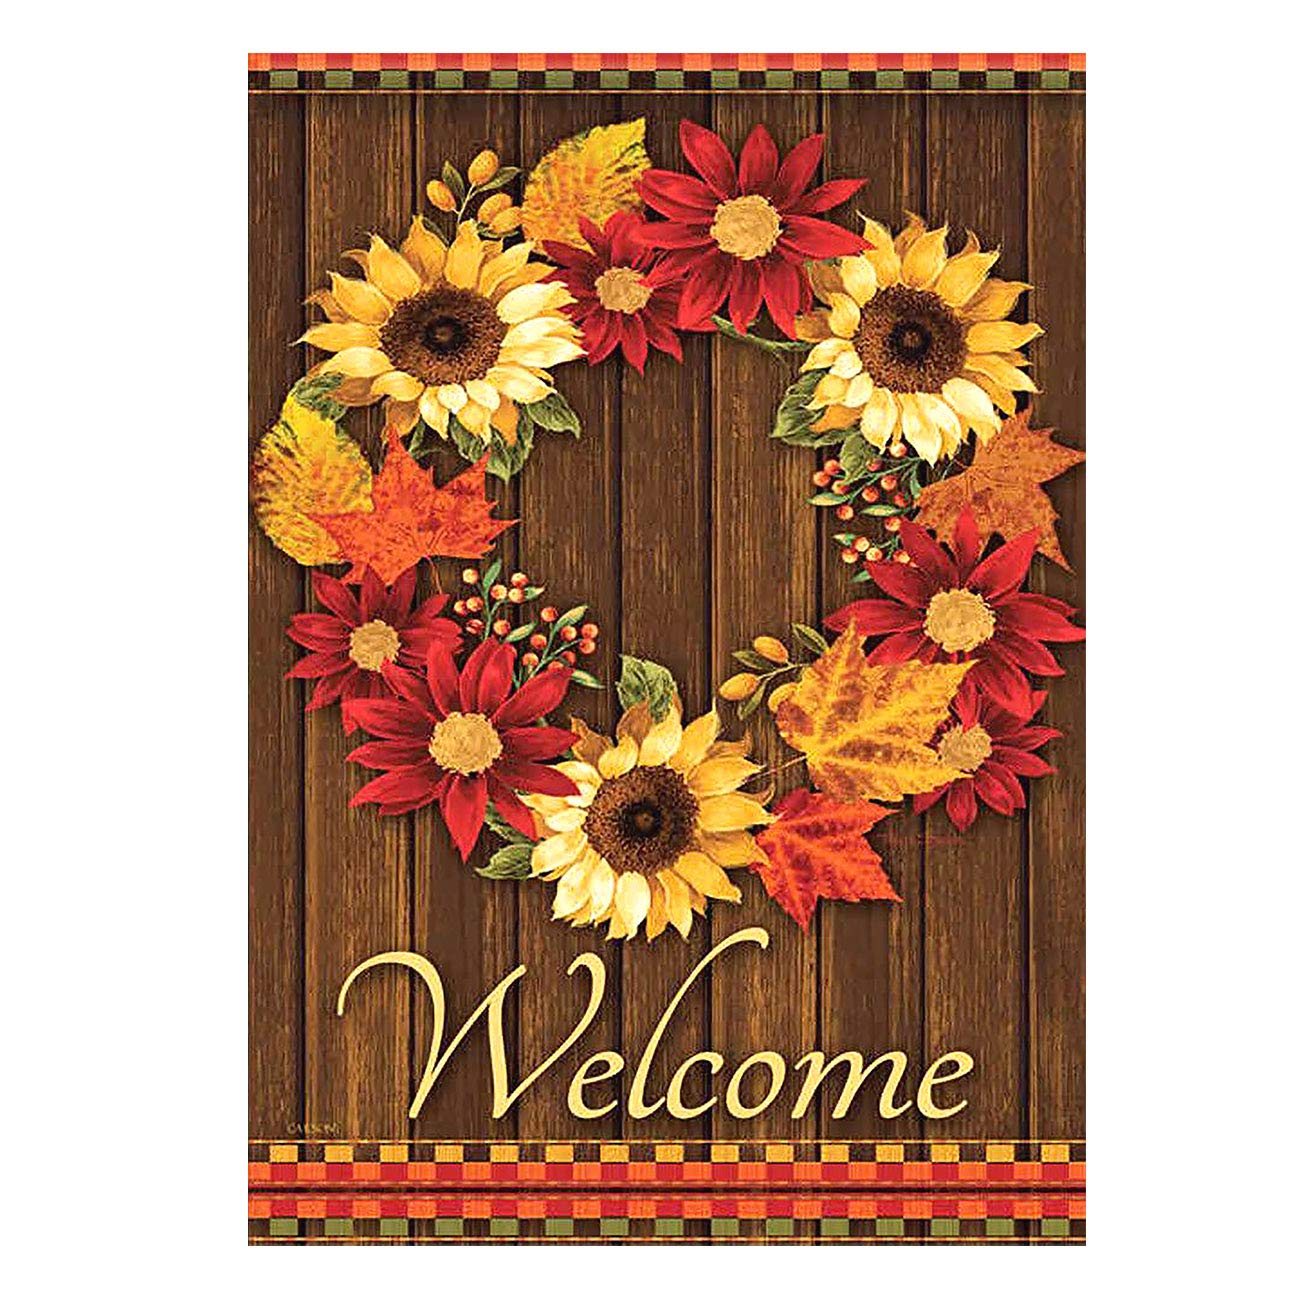 ALAZA Welcome Wreath Sunflower Maple Leaves Cabin Double Sided Garden Yard Flag 12'' x 18'', Flowers Wreath Summer Spring Autumn Fall Decorative Garden Flag Banner for Outdoor Home Decor Party